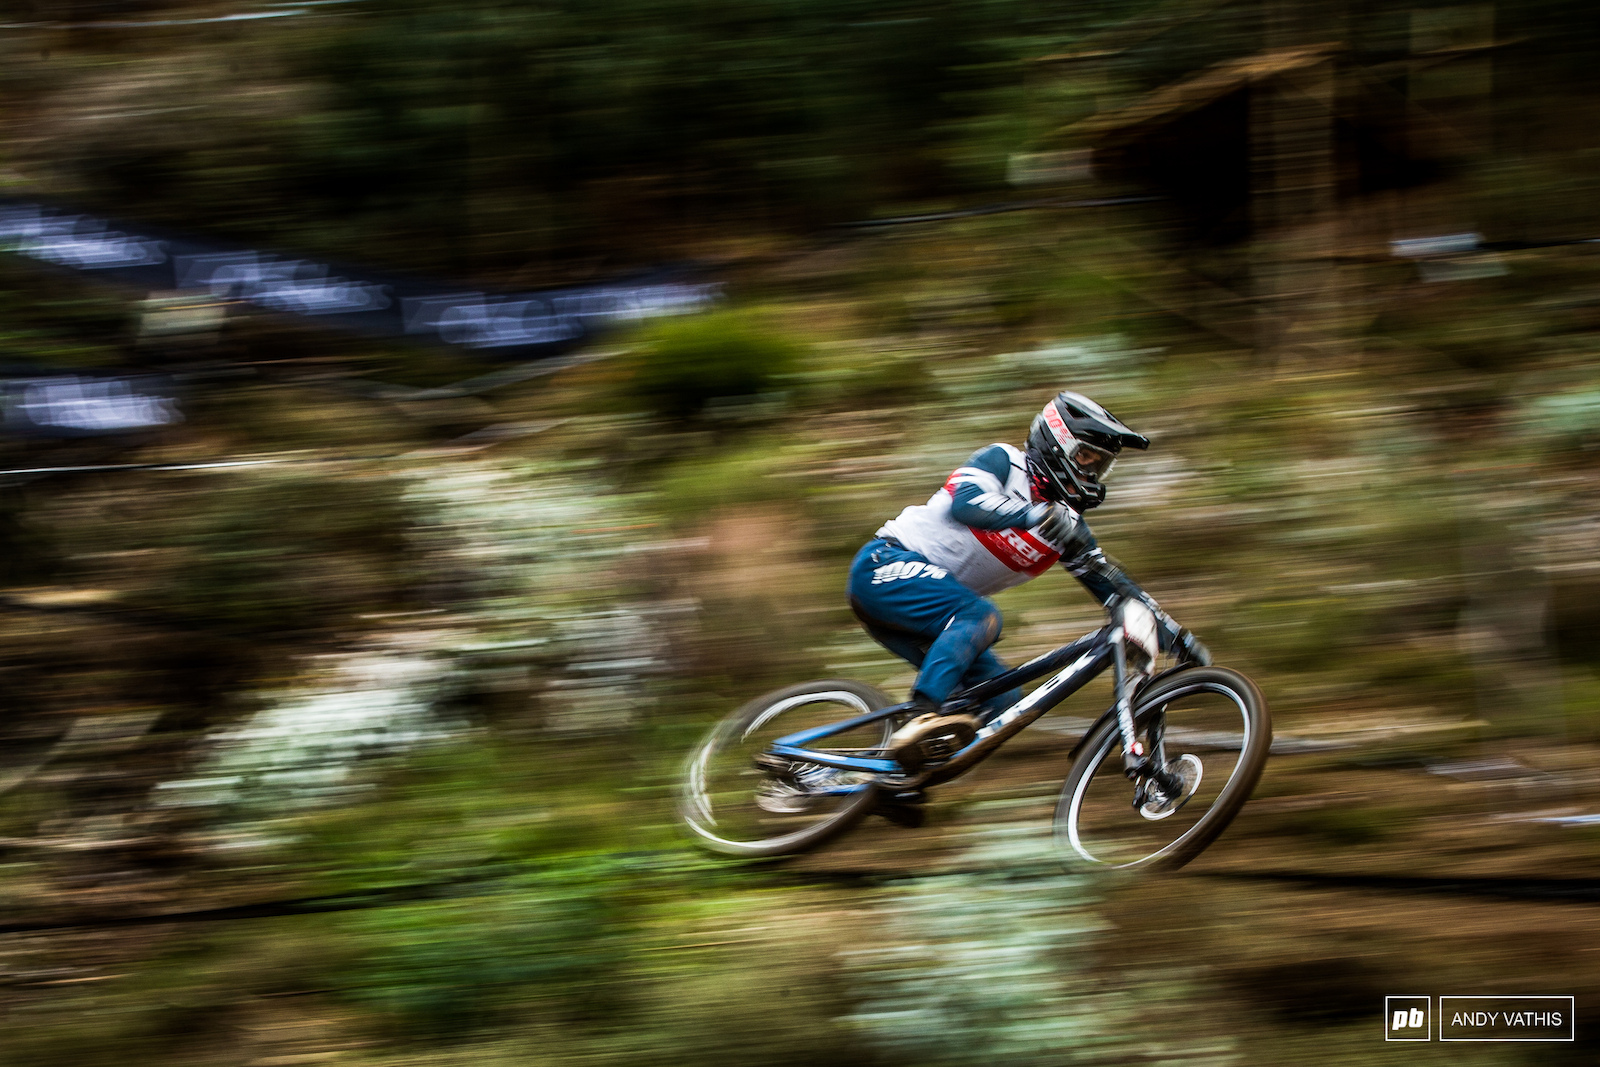 Kade Edwards holding it down for Trek this weekend and is doing a damn fine job of it.